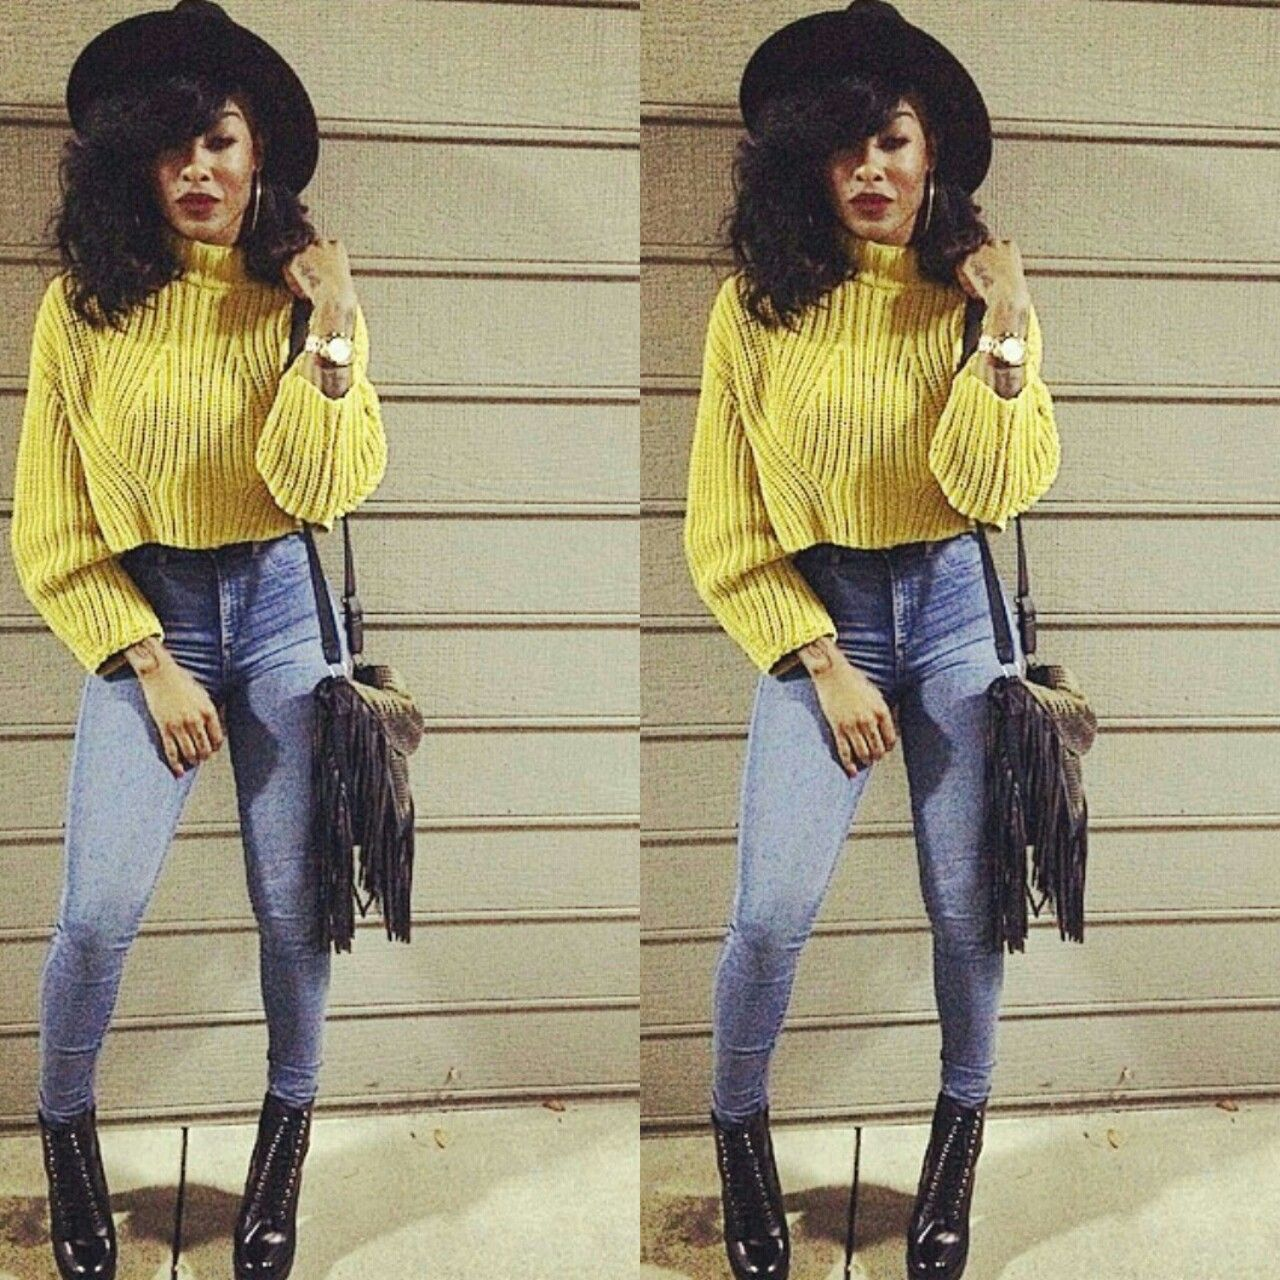 Yellow crop top!! Uu can neva go wrong in a pair of high